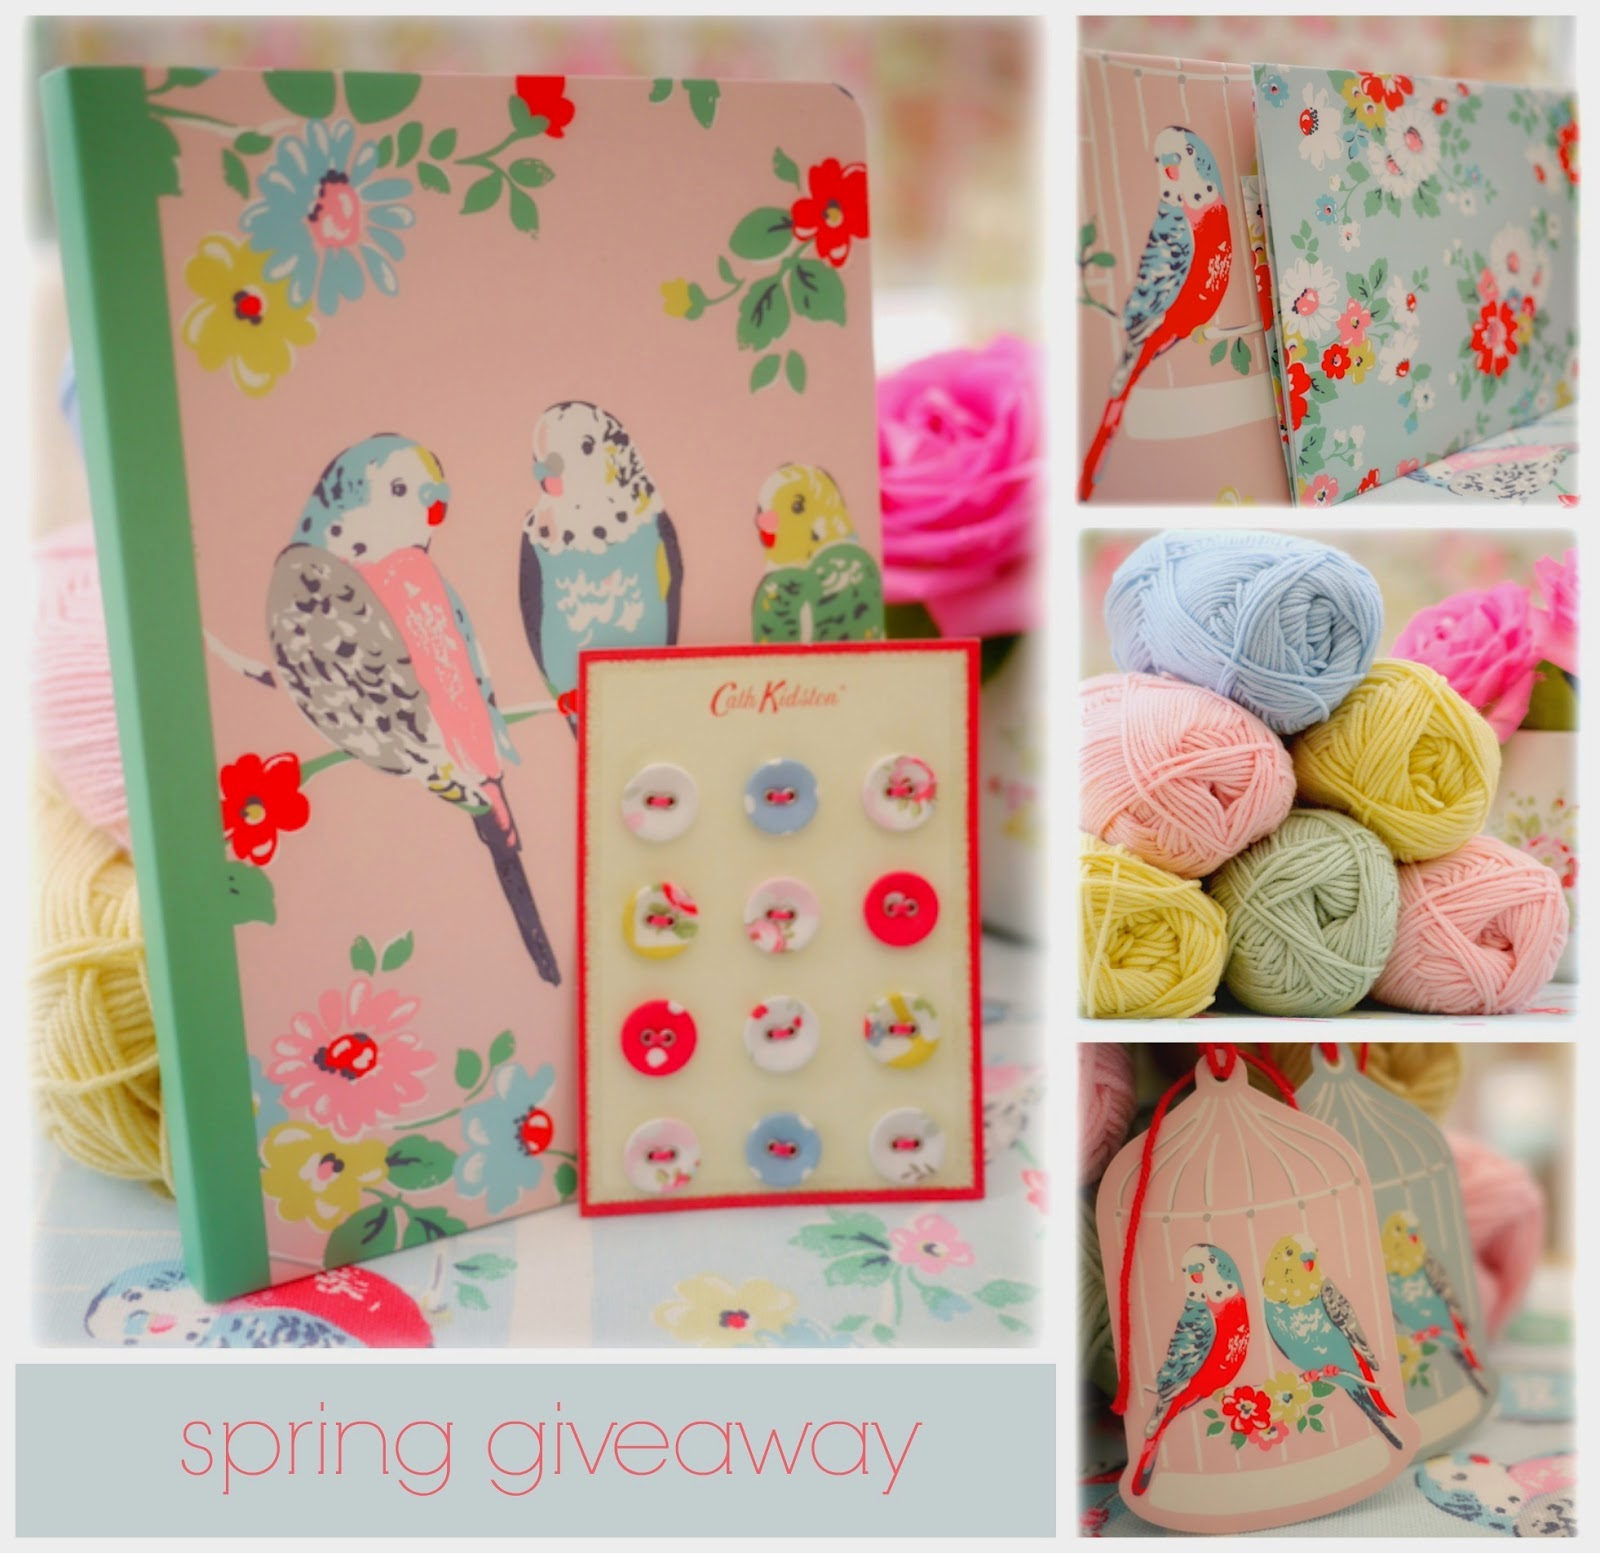 Mary Jane's Tearoom Giveaway